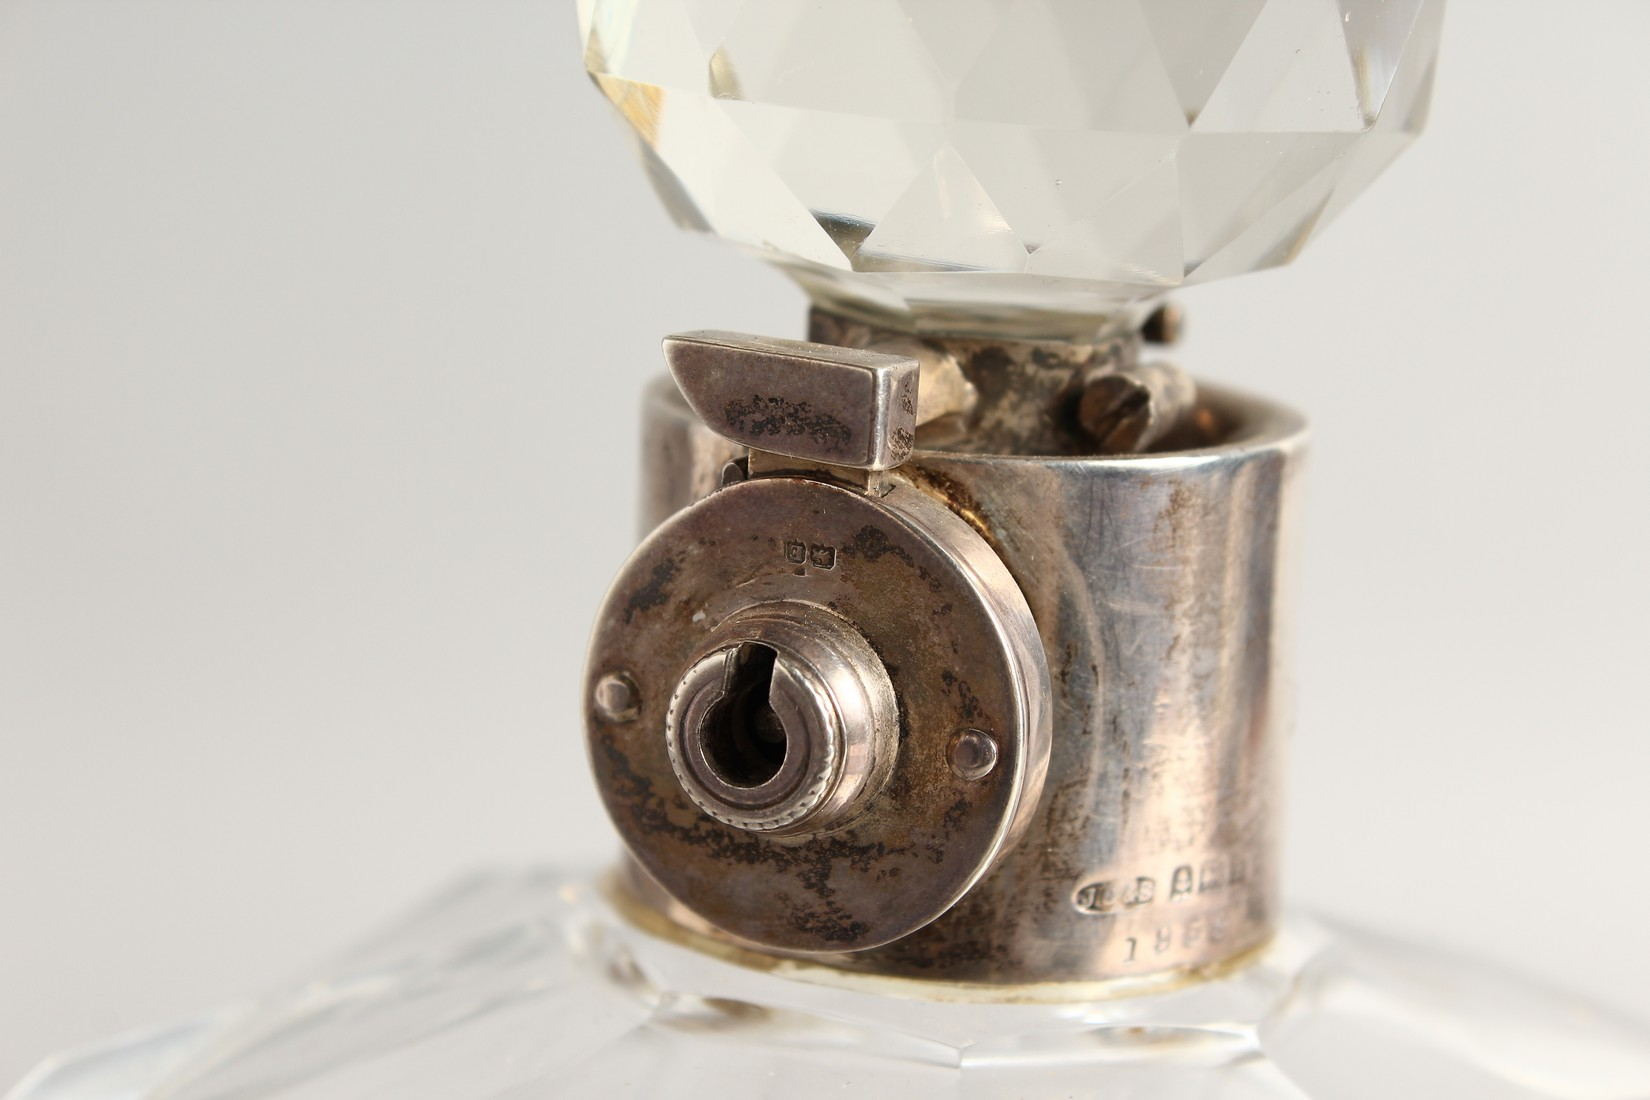 A HEAVY SQUARE GLASS WHISKY DECANTER AND STOPPER with silver band. - Image 2 of 3